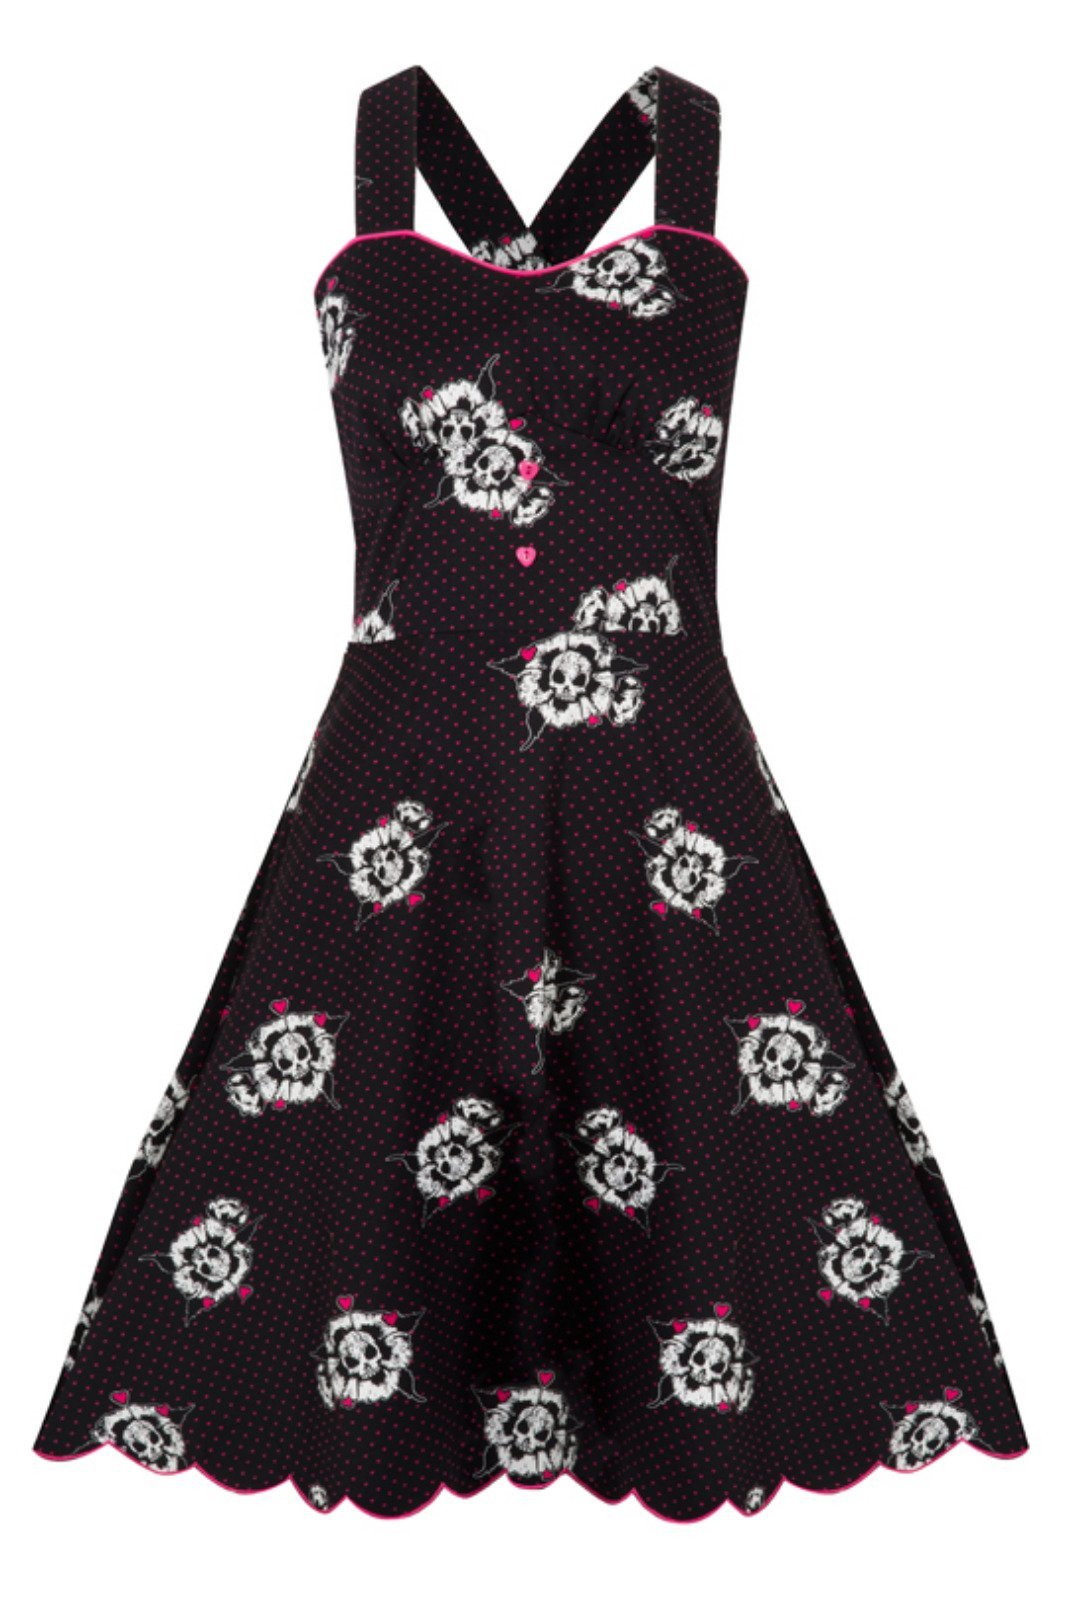 Jawbreaker Skulls Black/Pink Polka Dot Dress - Bohemian Finds